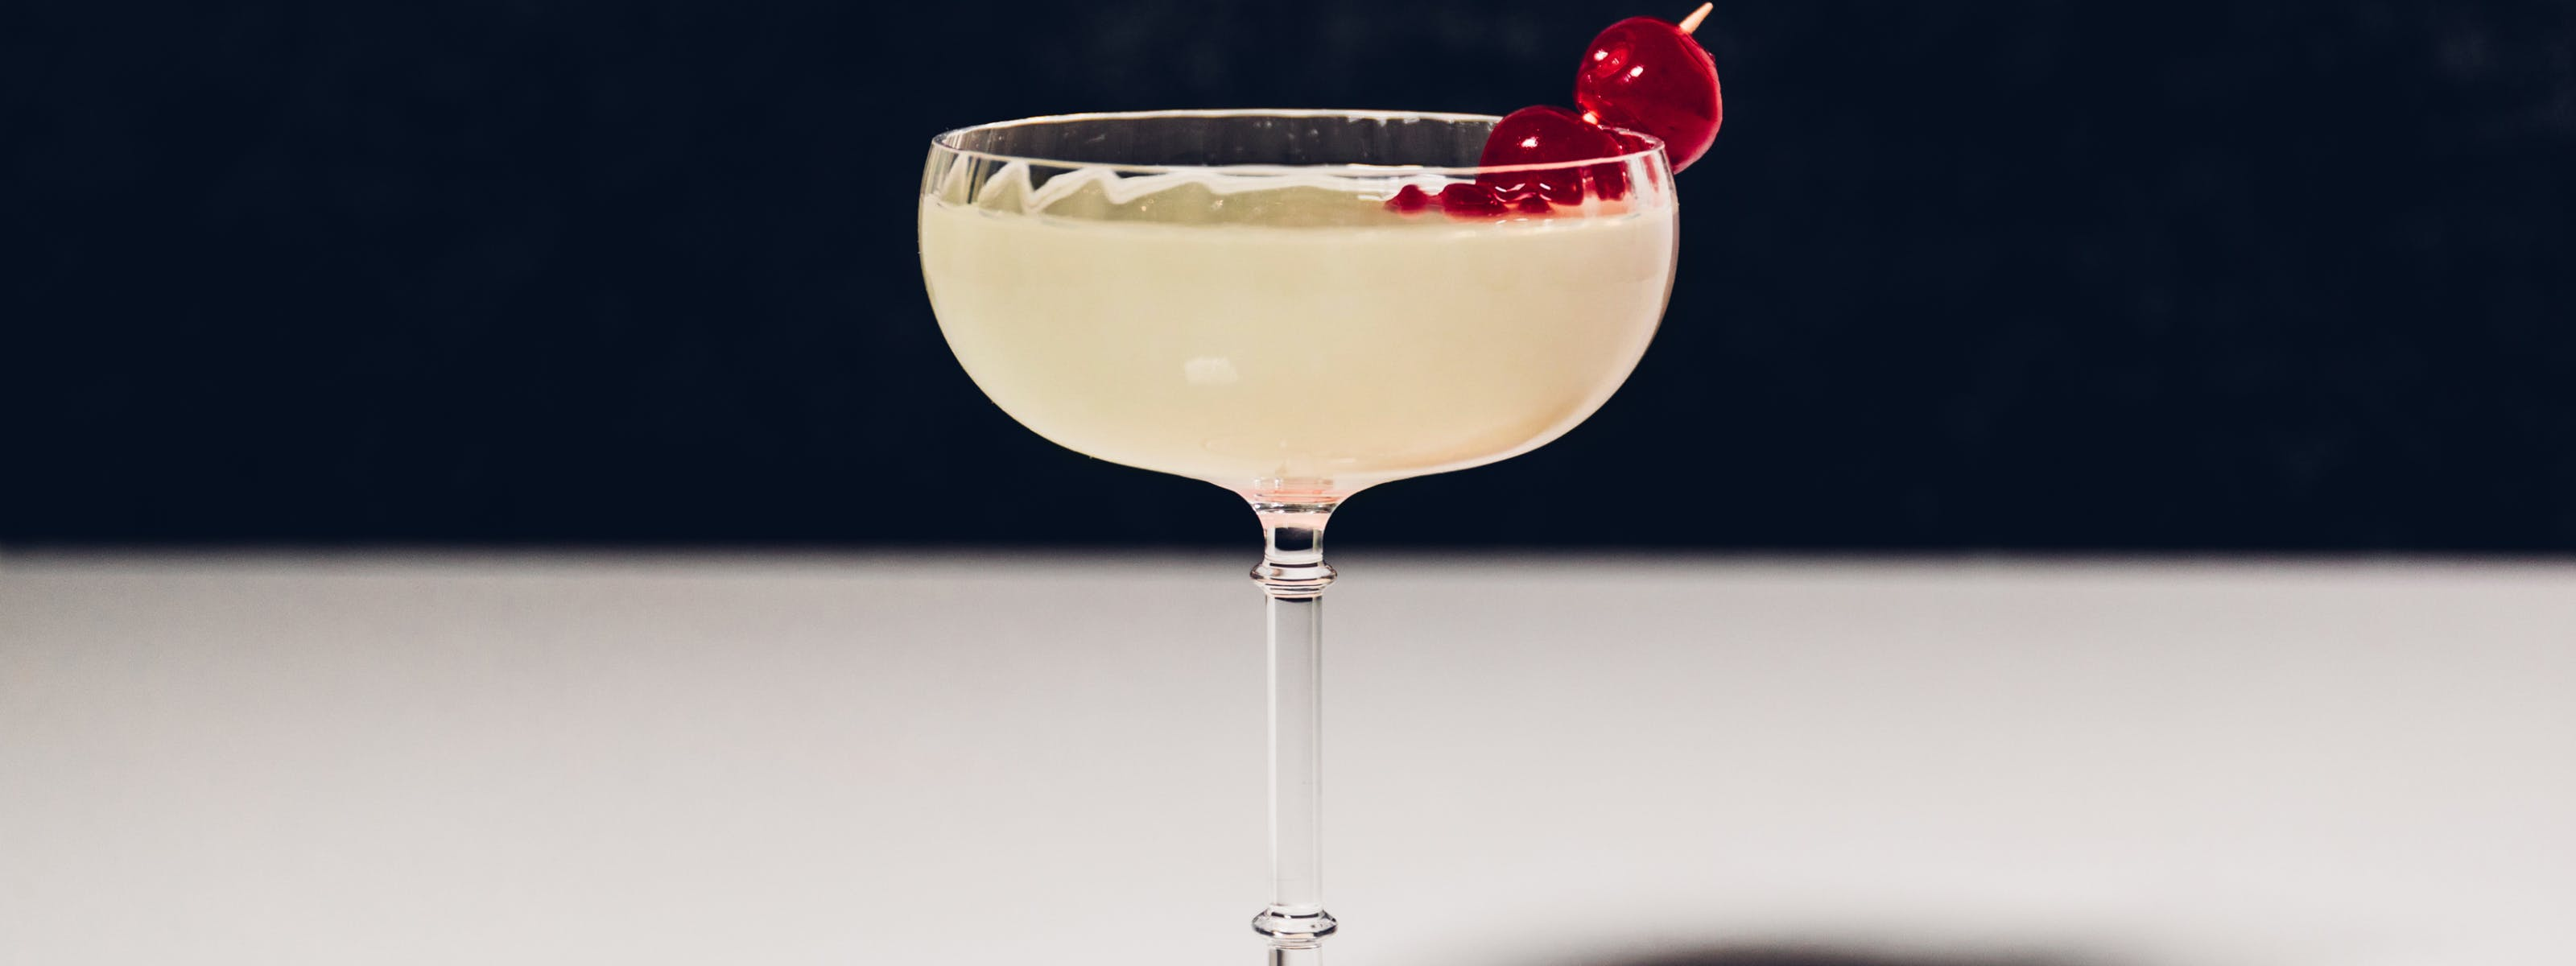 How to Make a Non-Alcoholic Corpse Reviver Cocktail